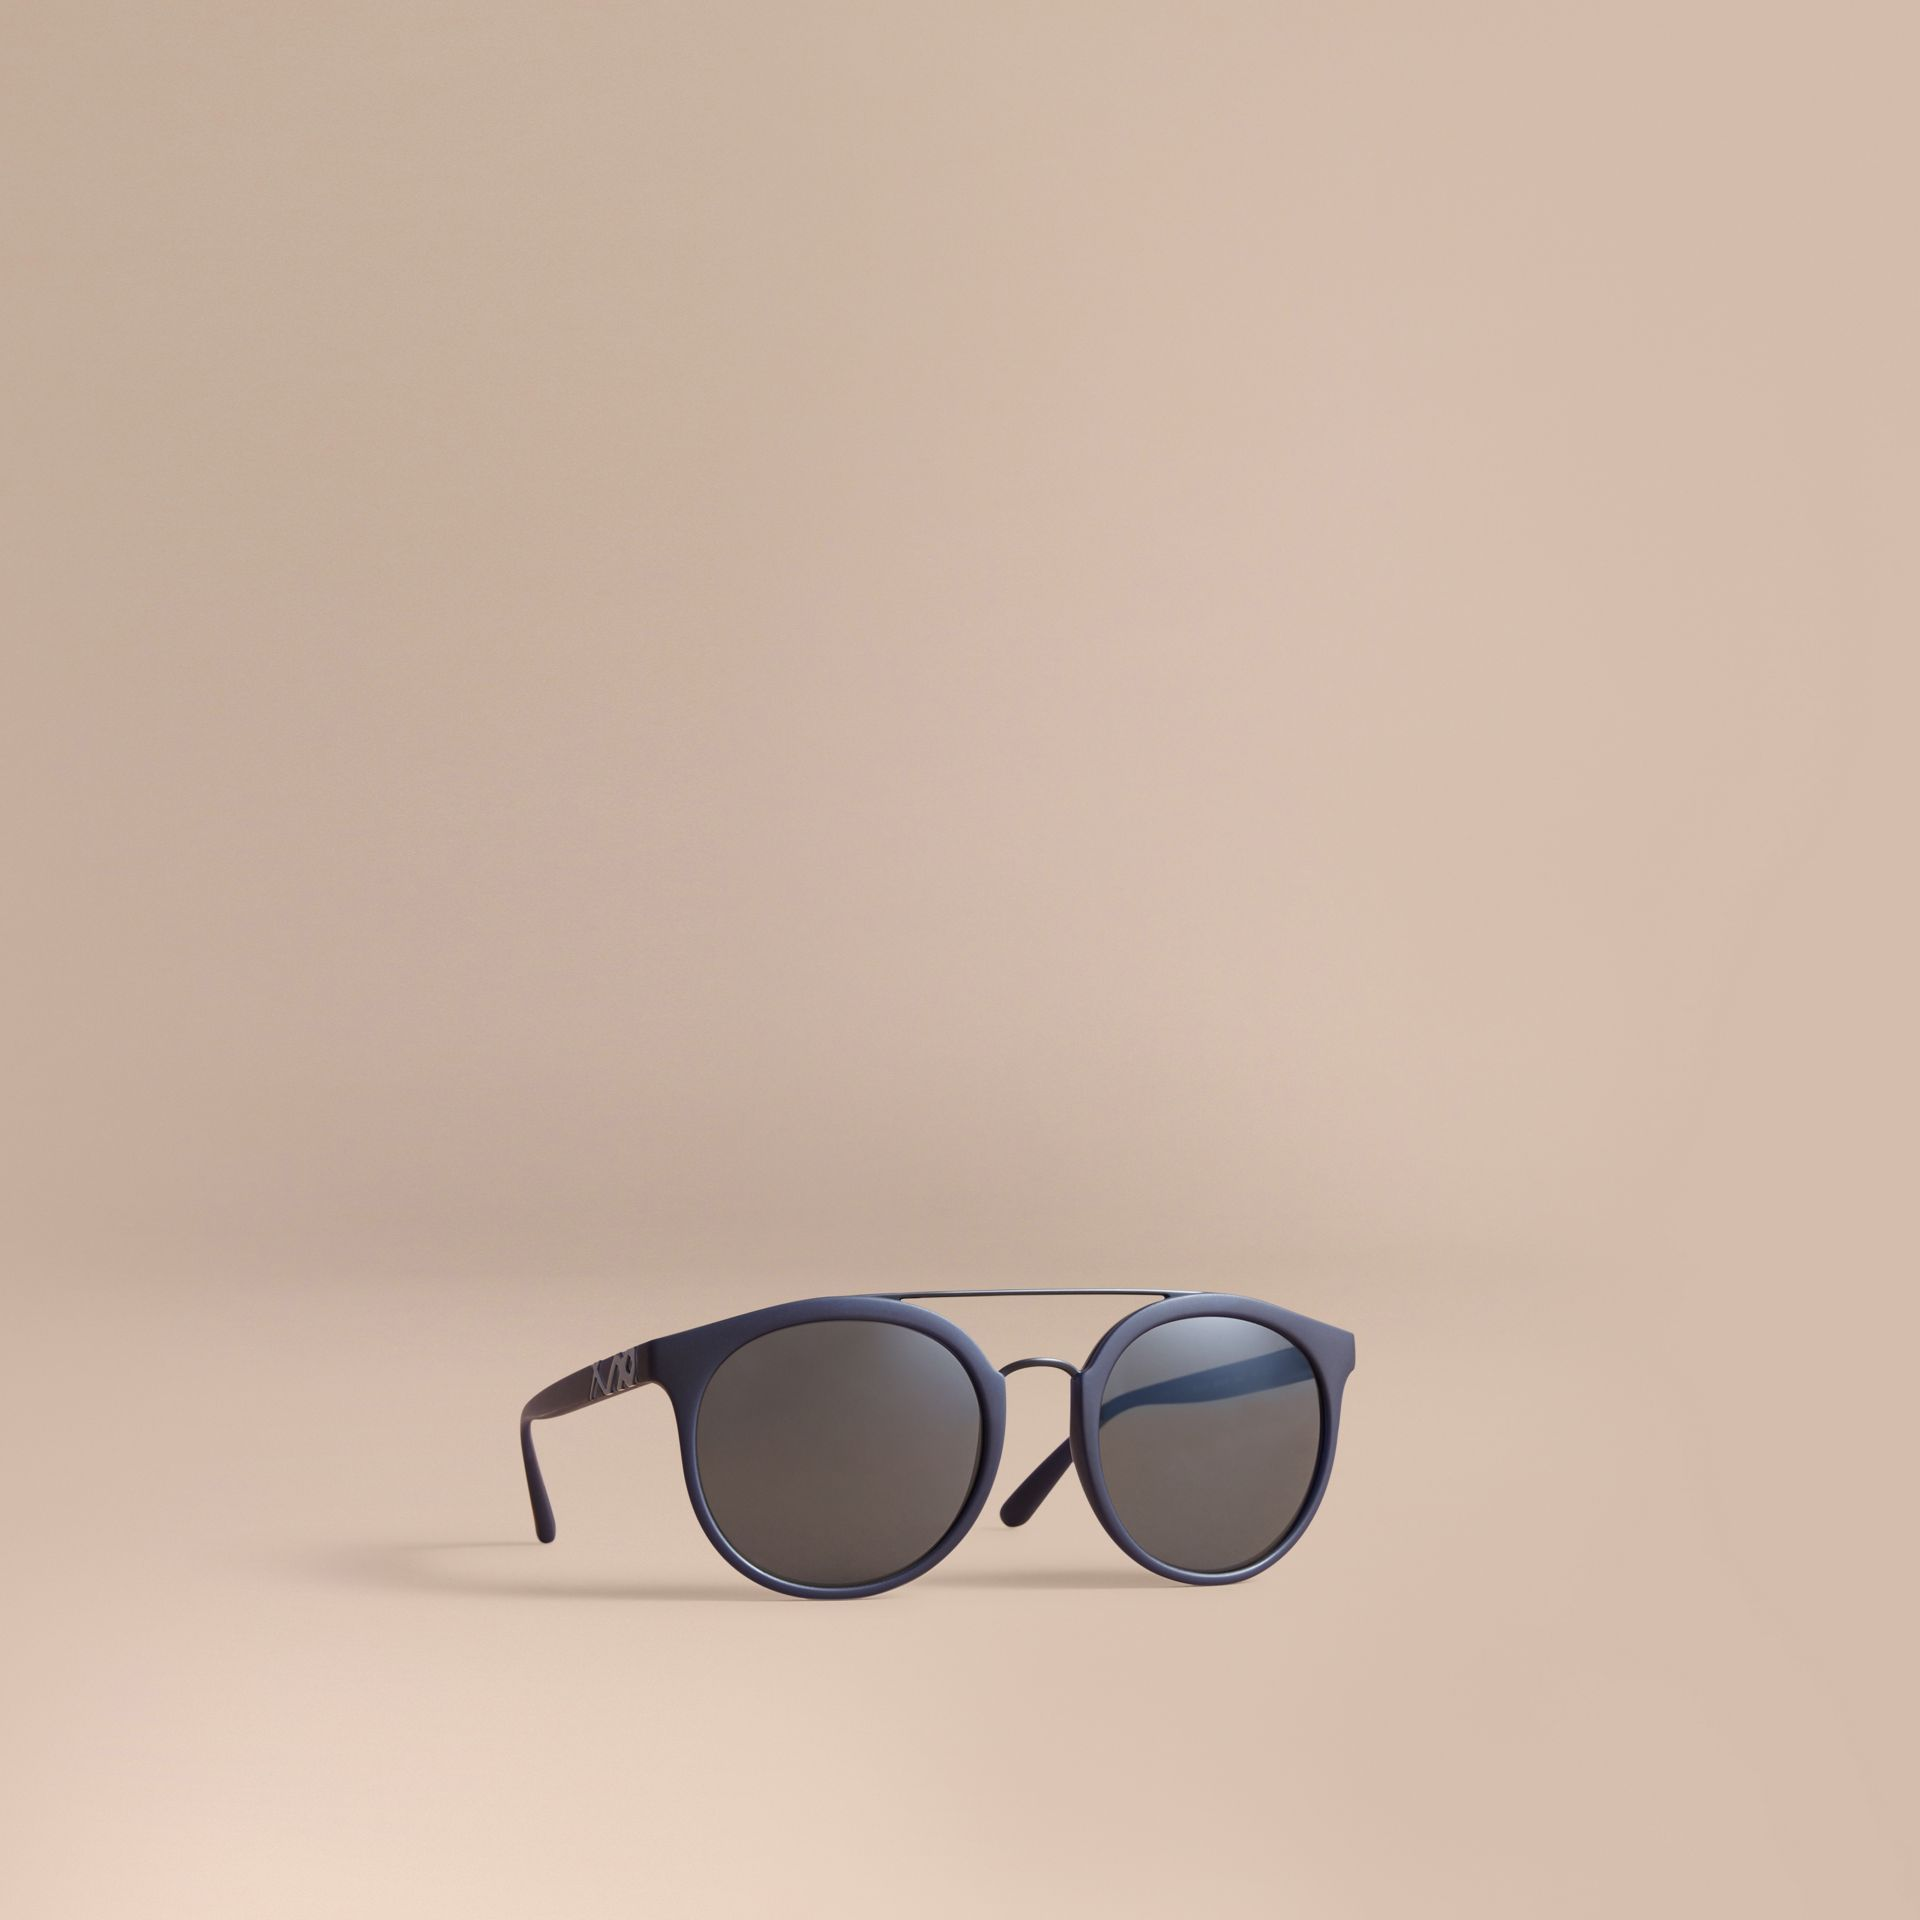 Top Bar Square Frame Sunglasses in Navy - Men | Burberry - gallery image 1